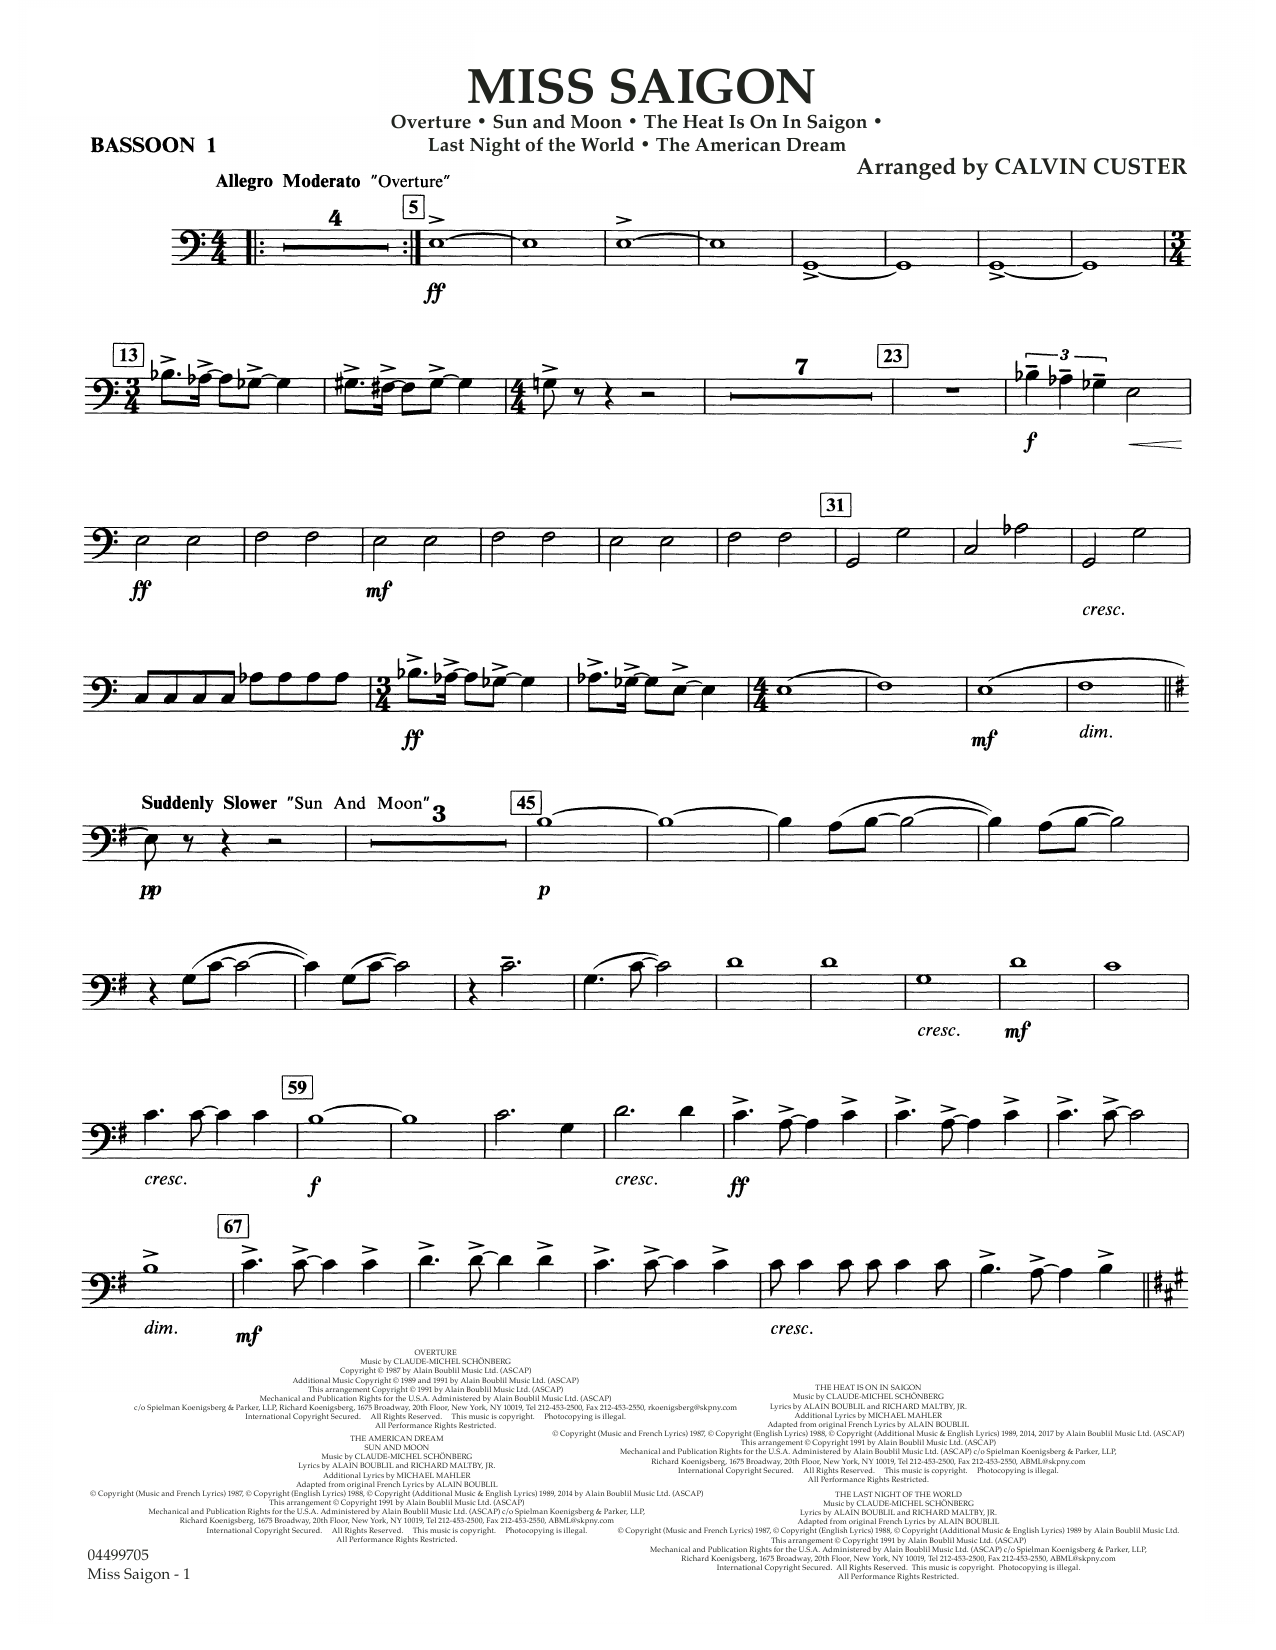 Download Boublil and Schonberg 'Miss Saigon (arr. Calvin Custer) - Bassoon 1' Digital Sheet Music Notes & Chords and start playing in minutes